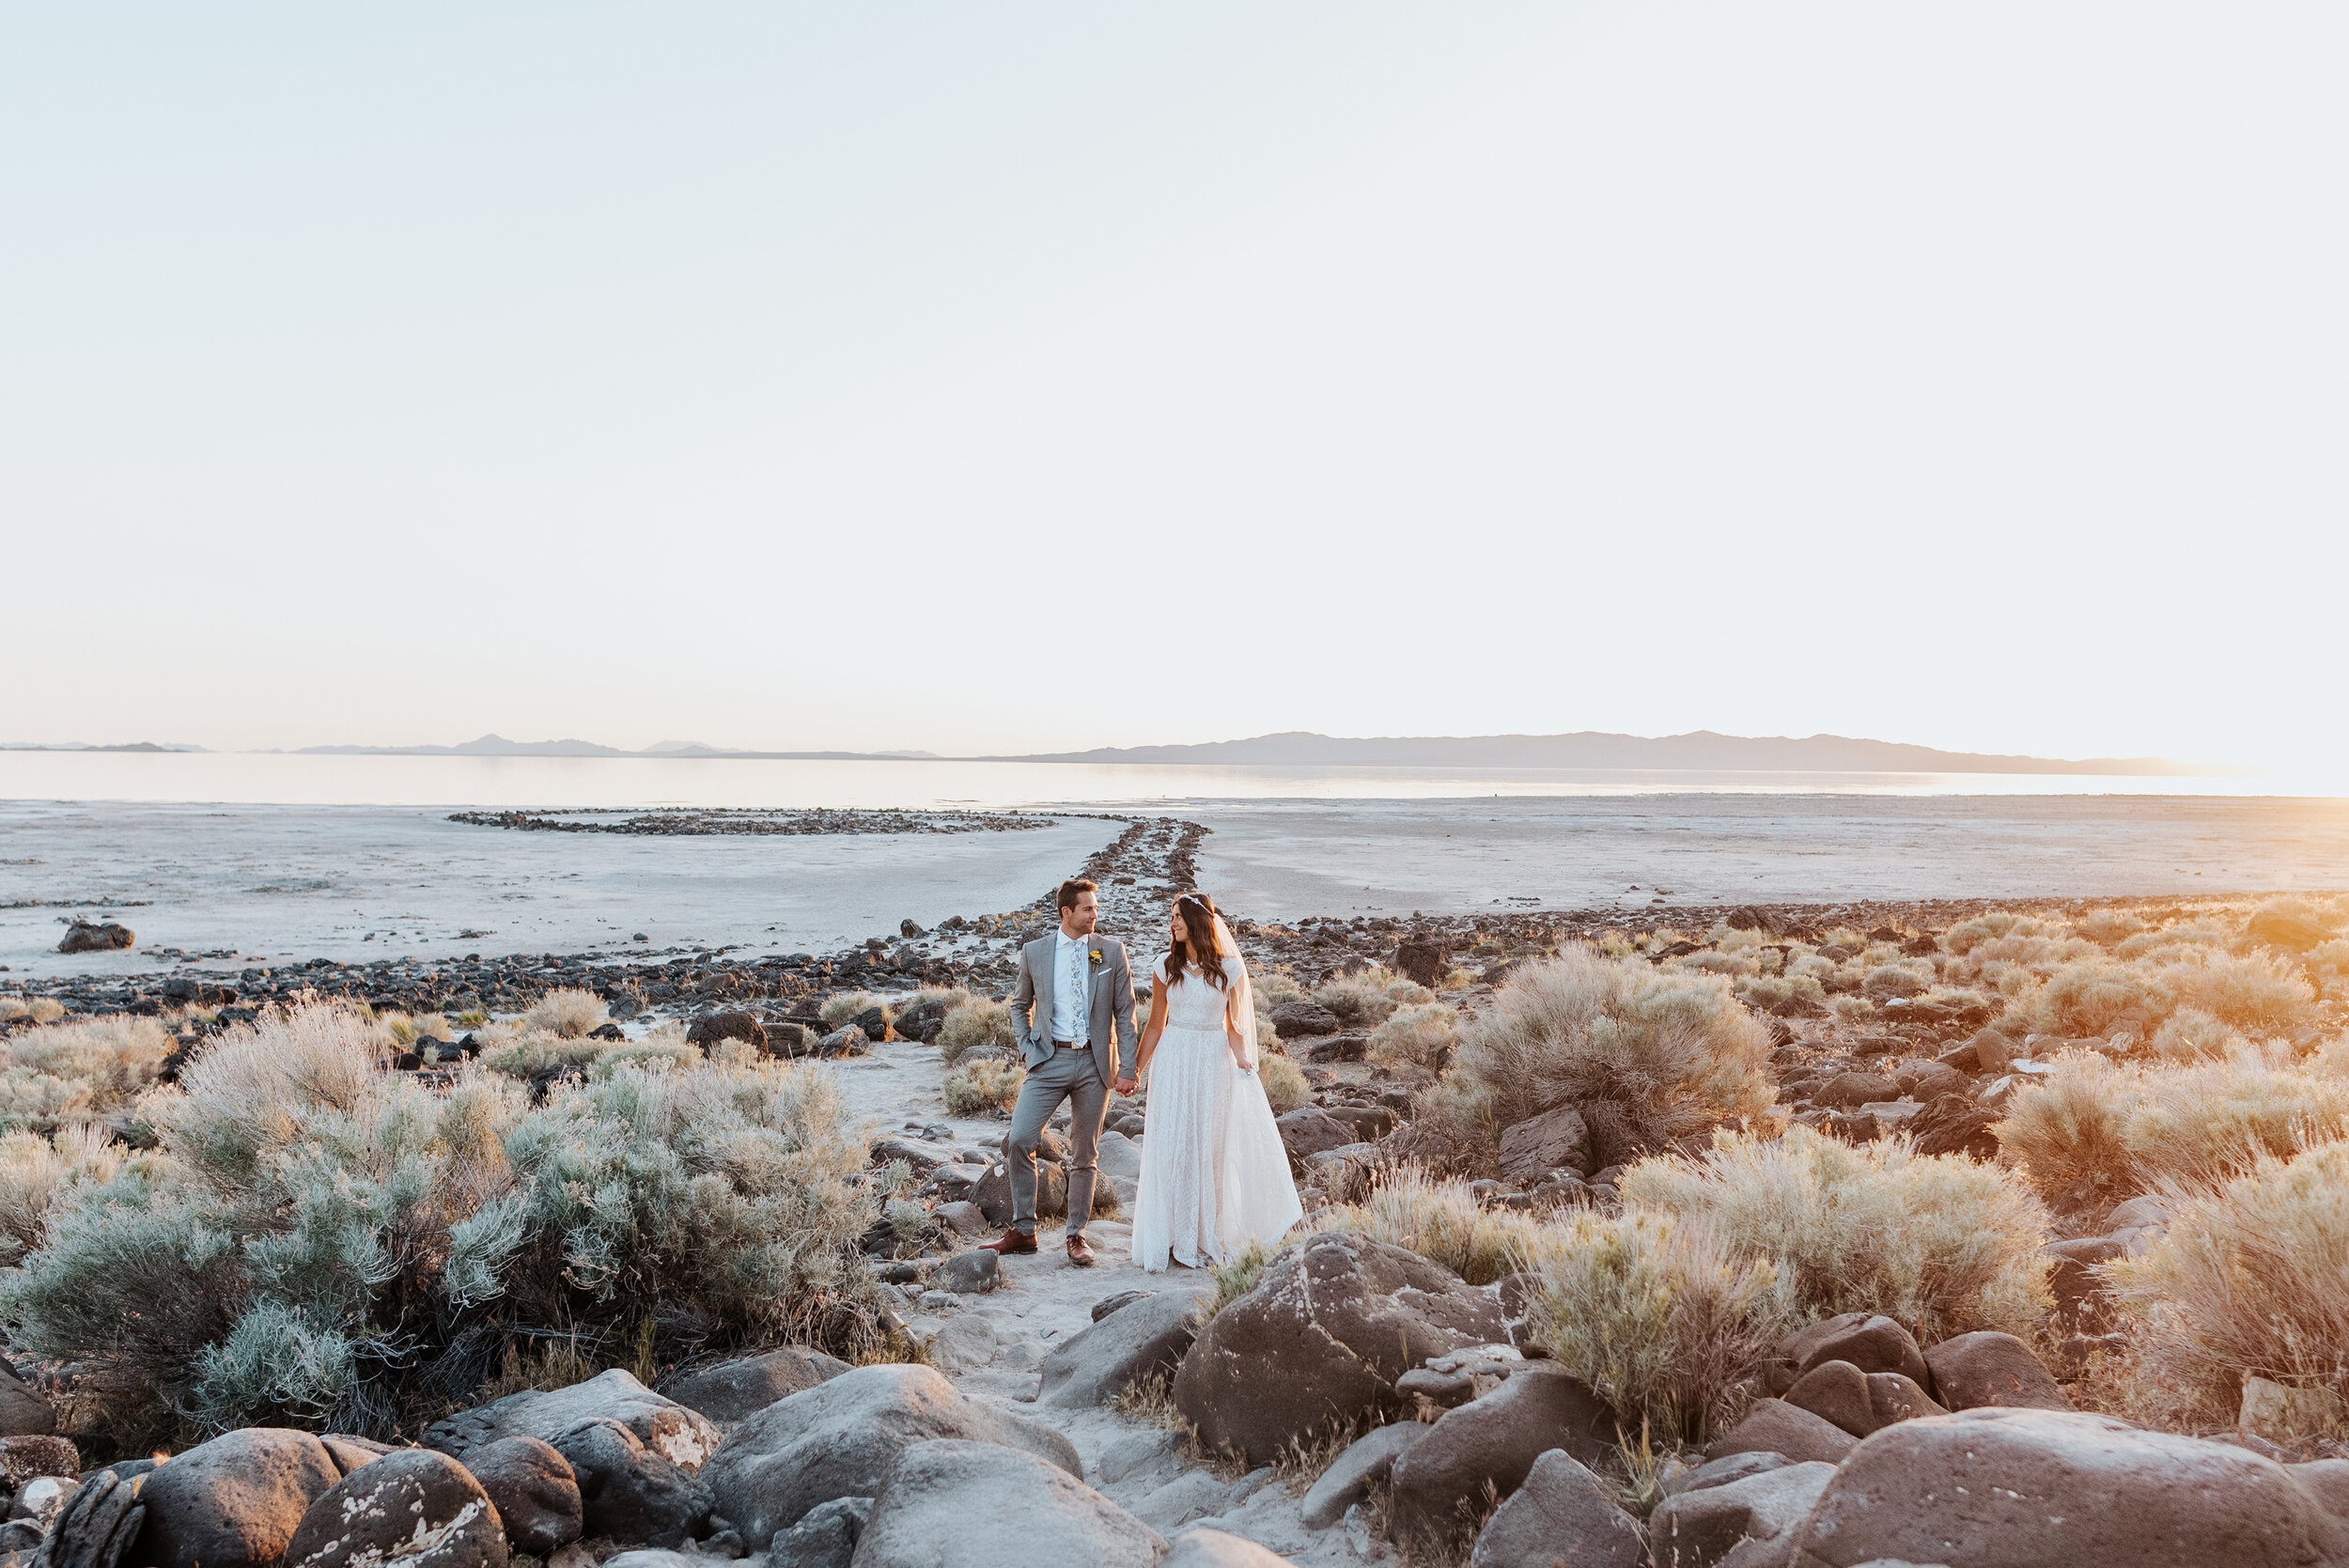 With the last glimpses of the sun shining just beyond the waters edge, this bride and groom stood with a stunning backdrop and held each other with excitement. wedding formal session utah wedding photographer formal session #spiraljetty #GreatSaltLake #formalsession #SaltFlats #sunsetphotosession #NorthernUtah #weddingphotographer #formalphotographer #brideandgroom #outdoorformals #weddingformalphotography